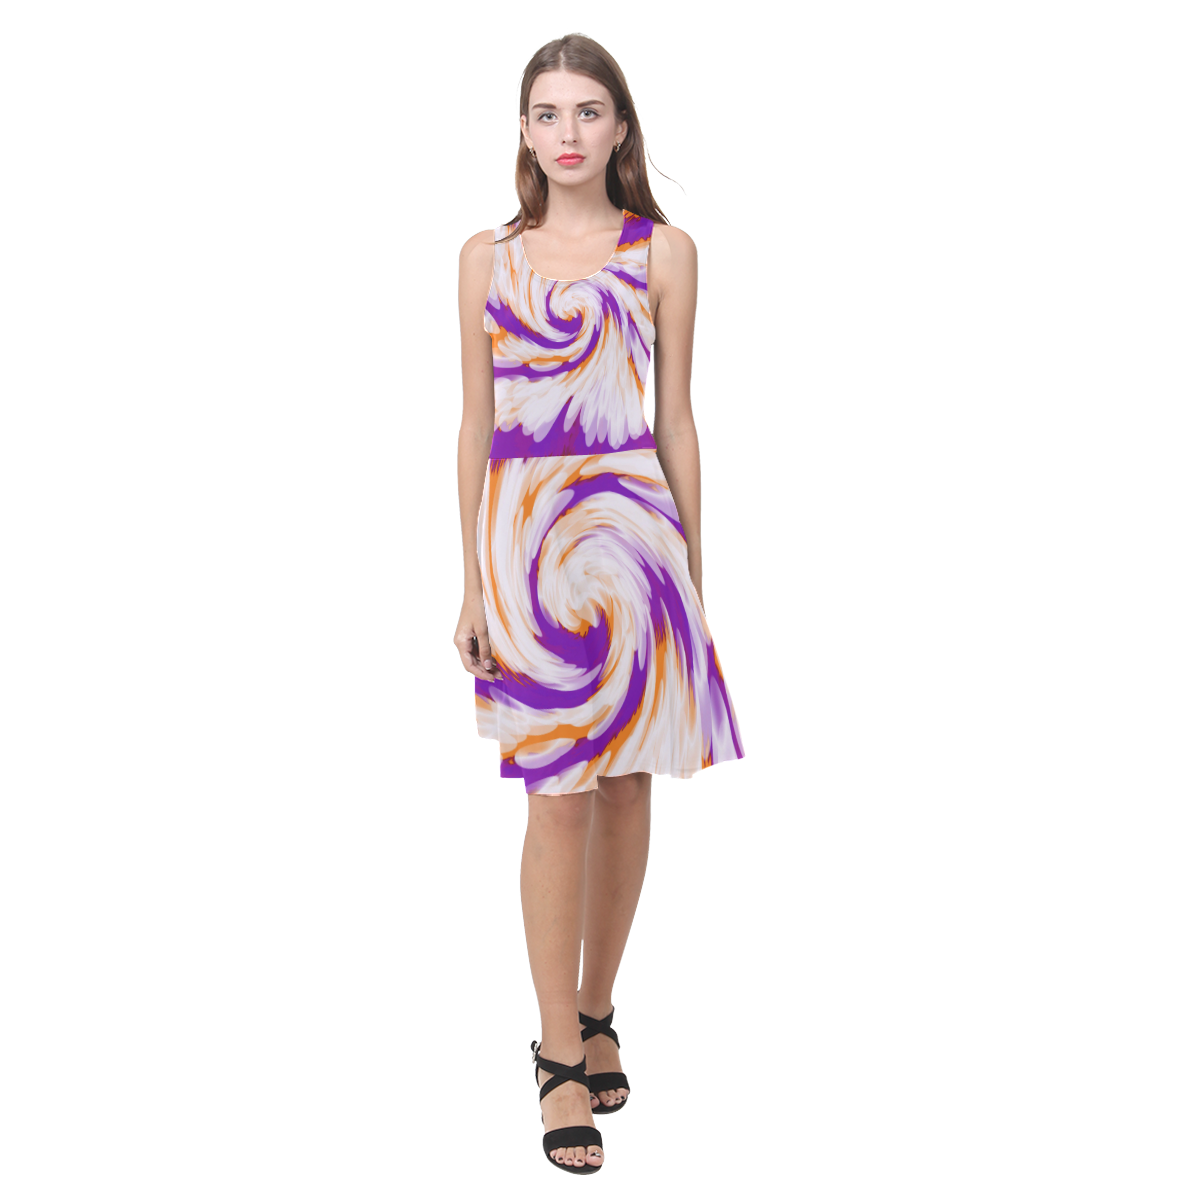 054ce18edc Green and Black Waves 3 4 Sleeve Sundress (D23) in 2019